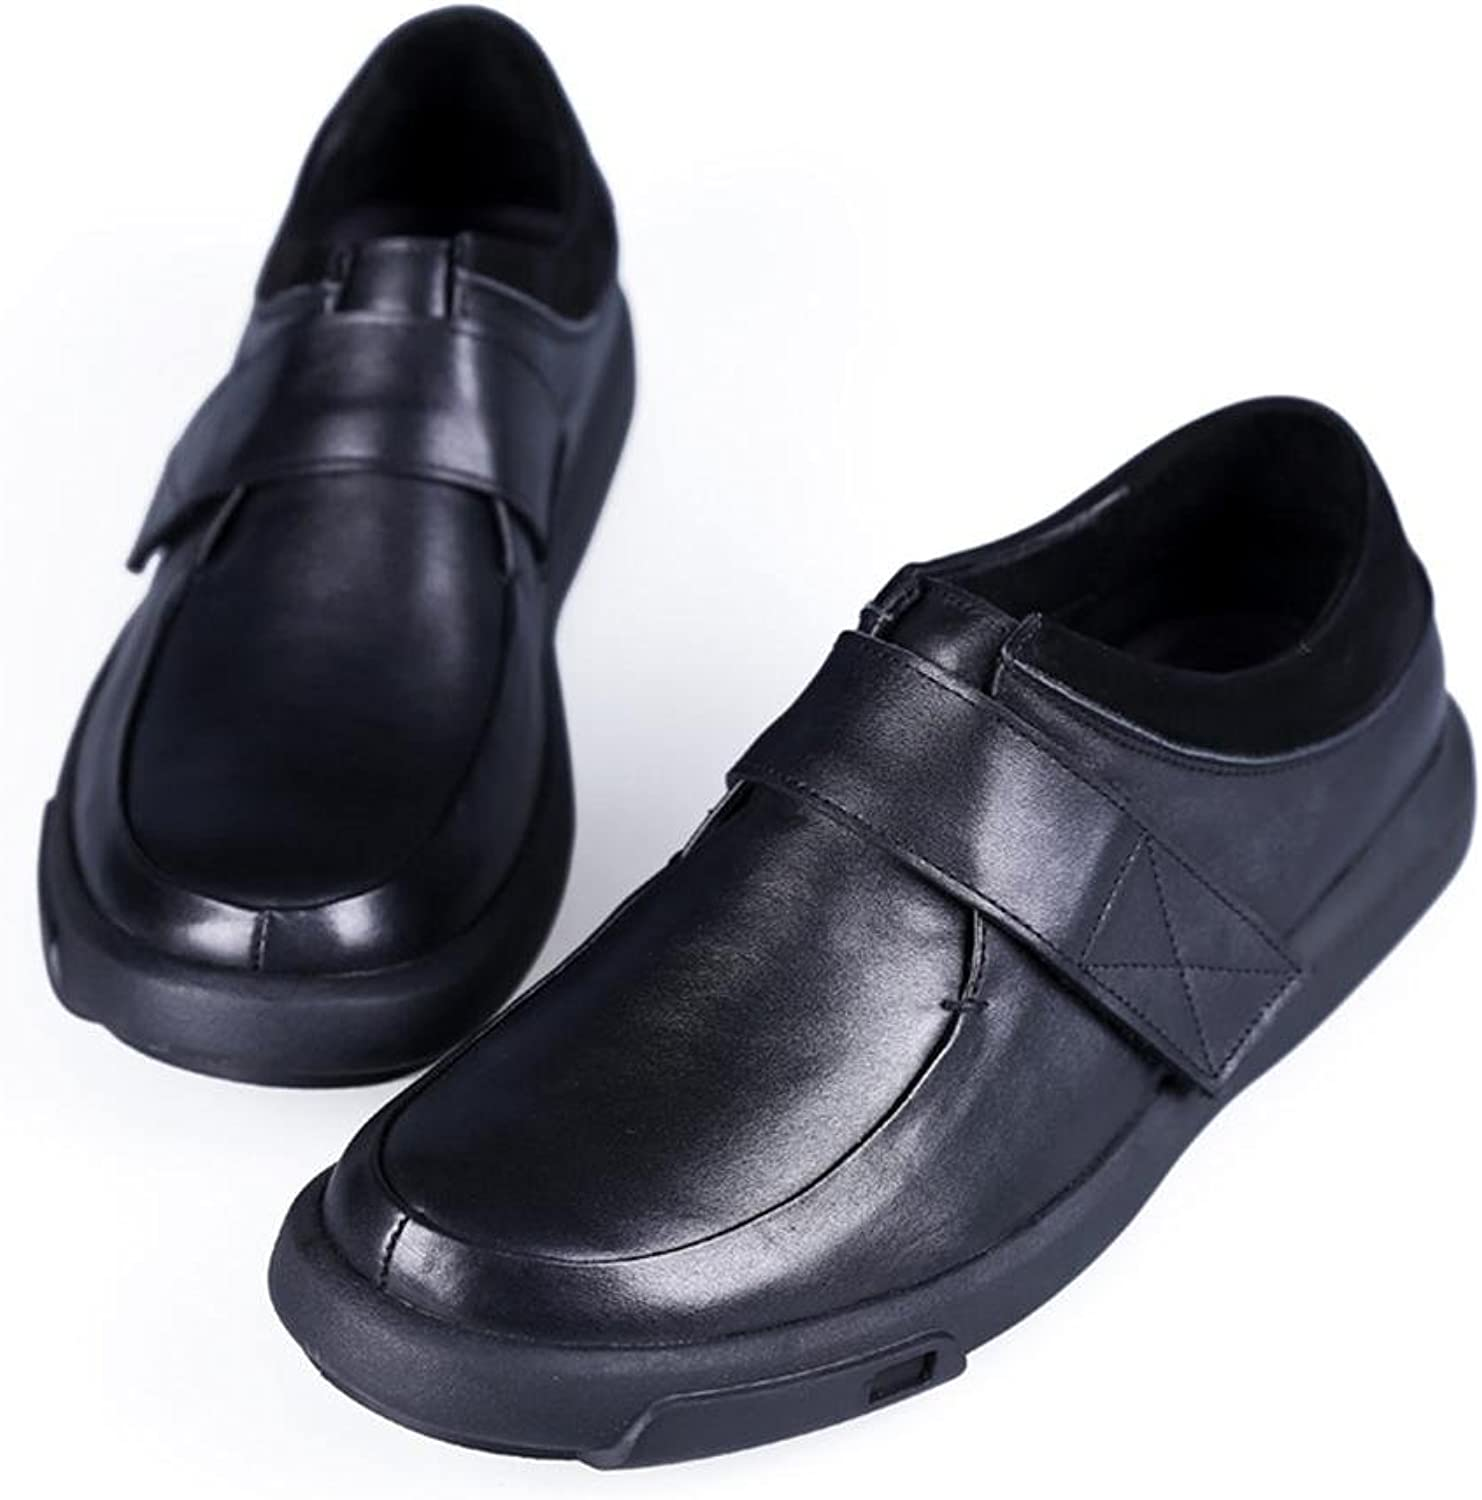 CHAOYANGLeather shoes leather hand business and leisure low man shoes , black , 40